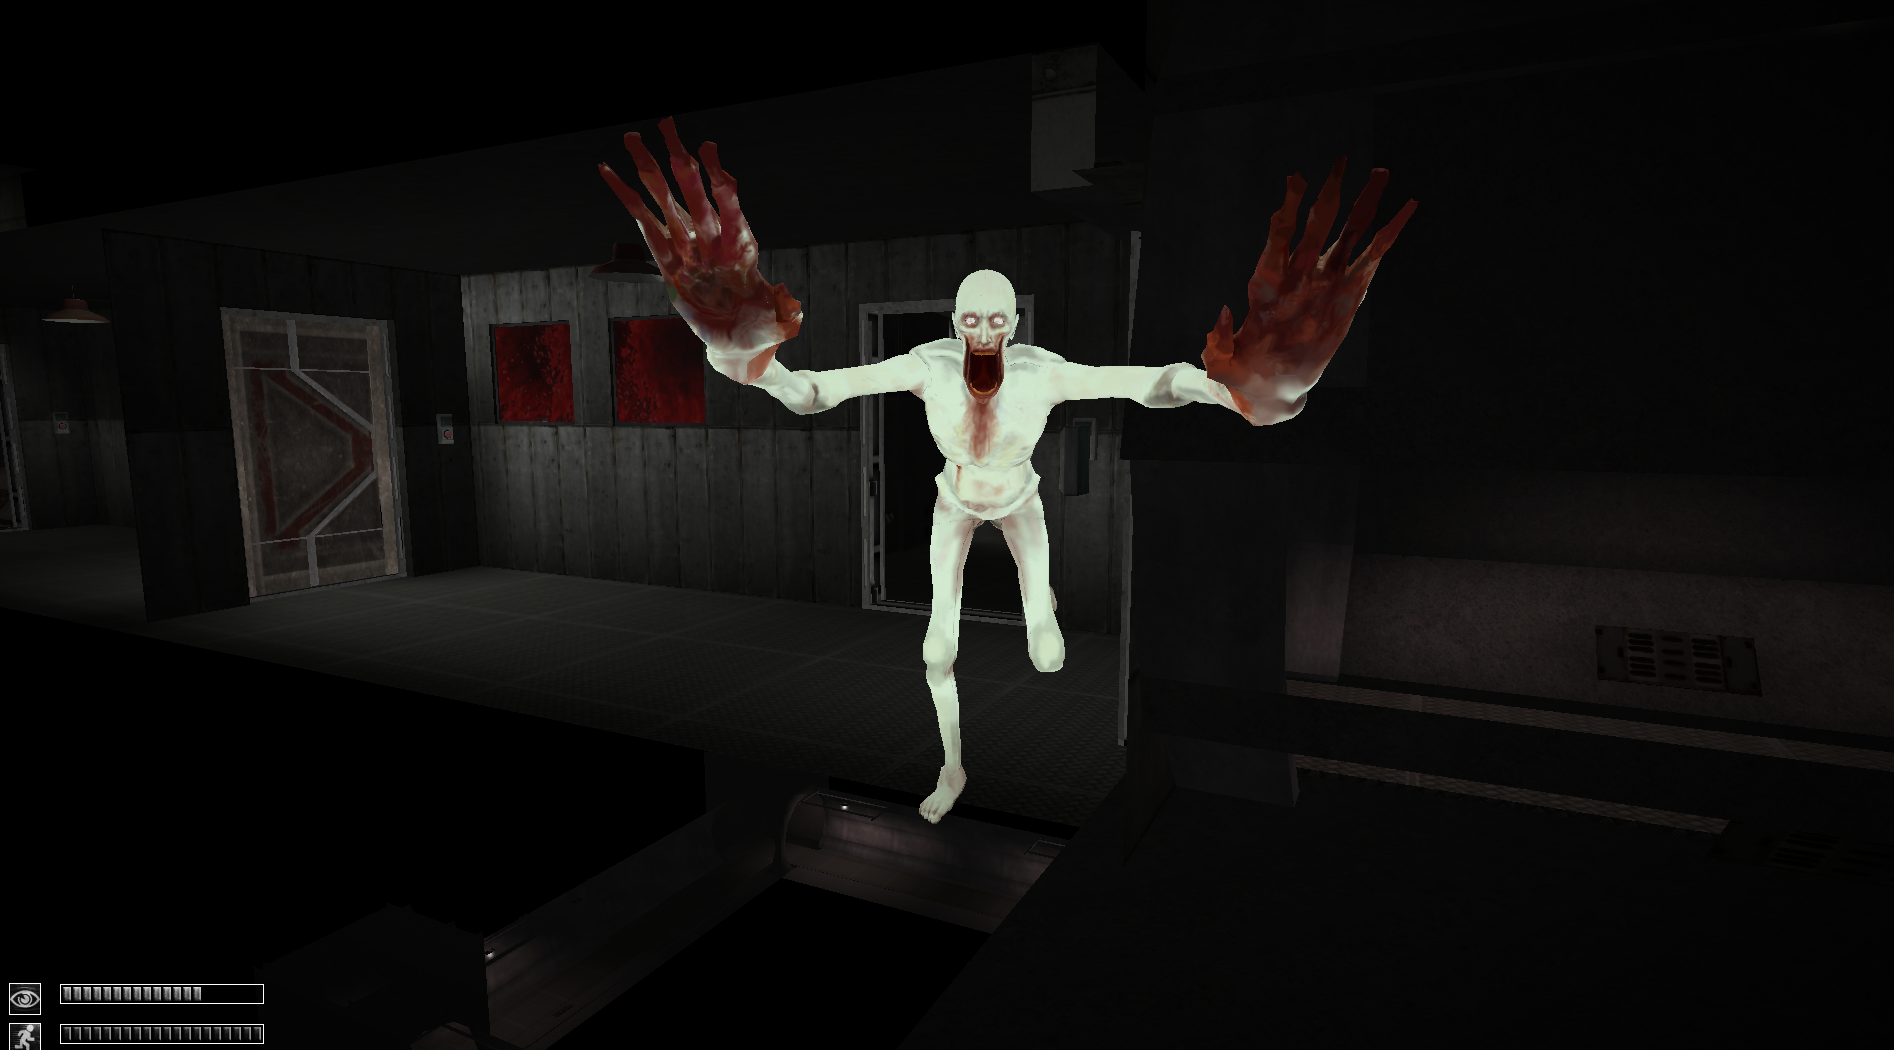 SCP-096 in SCP: Containment Breach